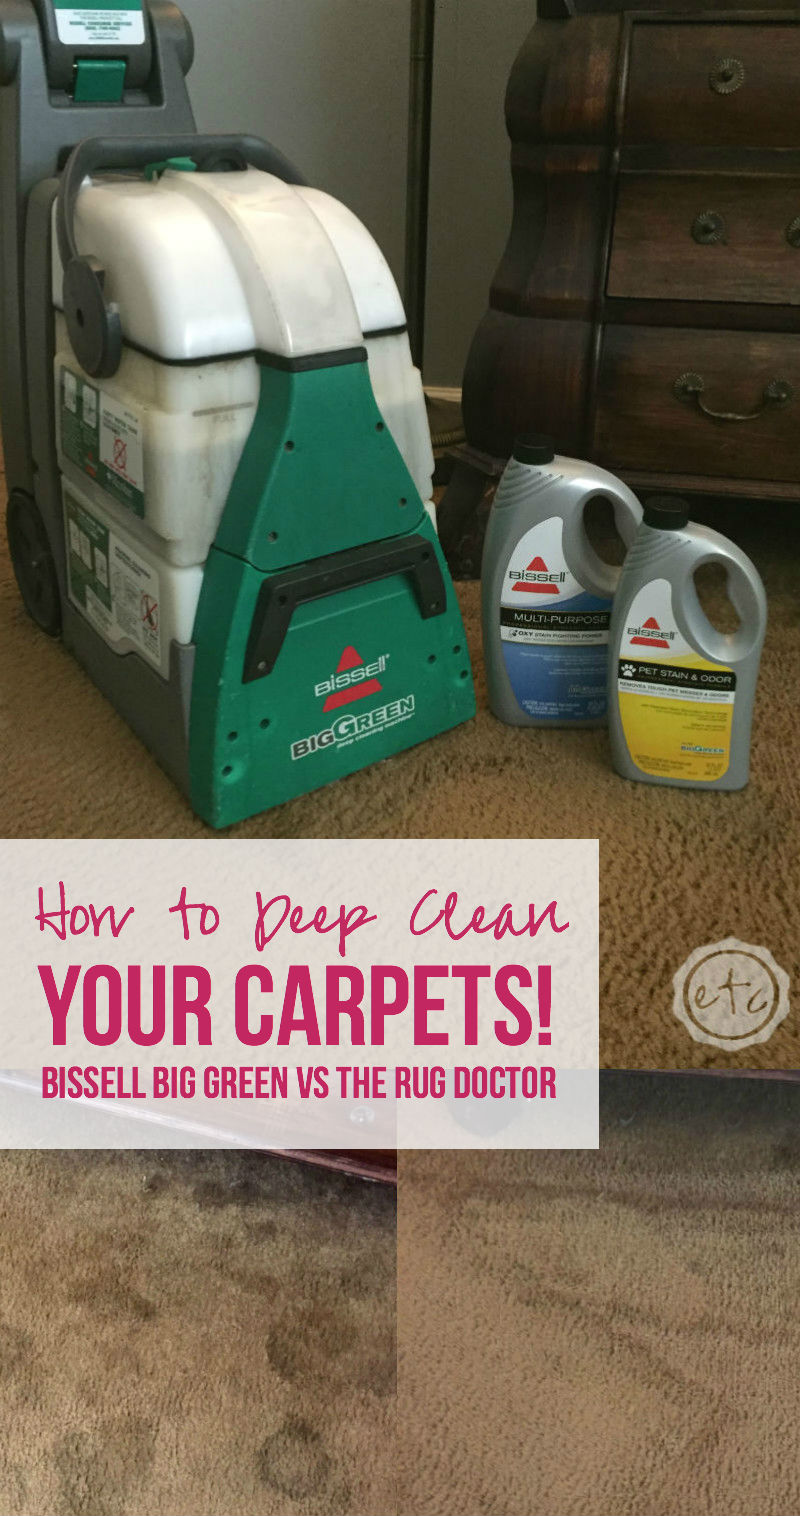 how to deep clean your carpets bissell big green vs the rug doctor